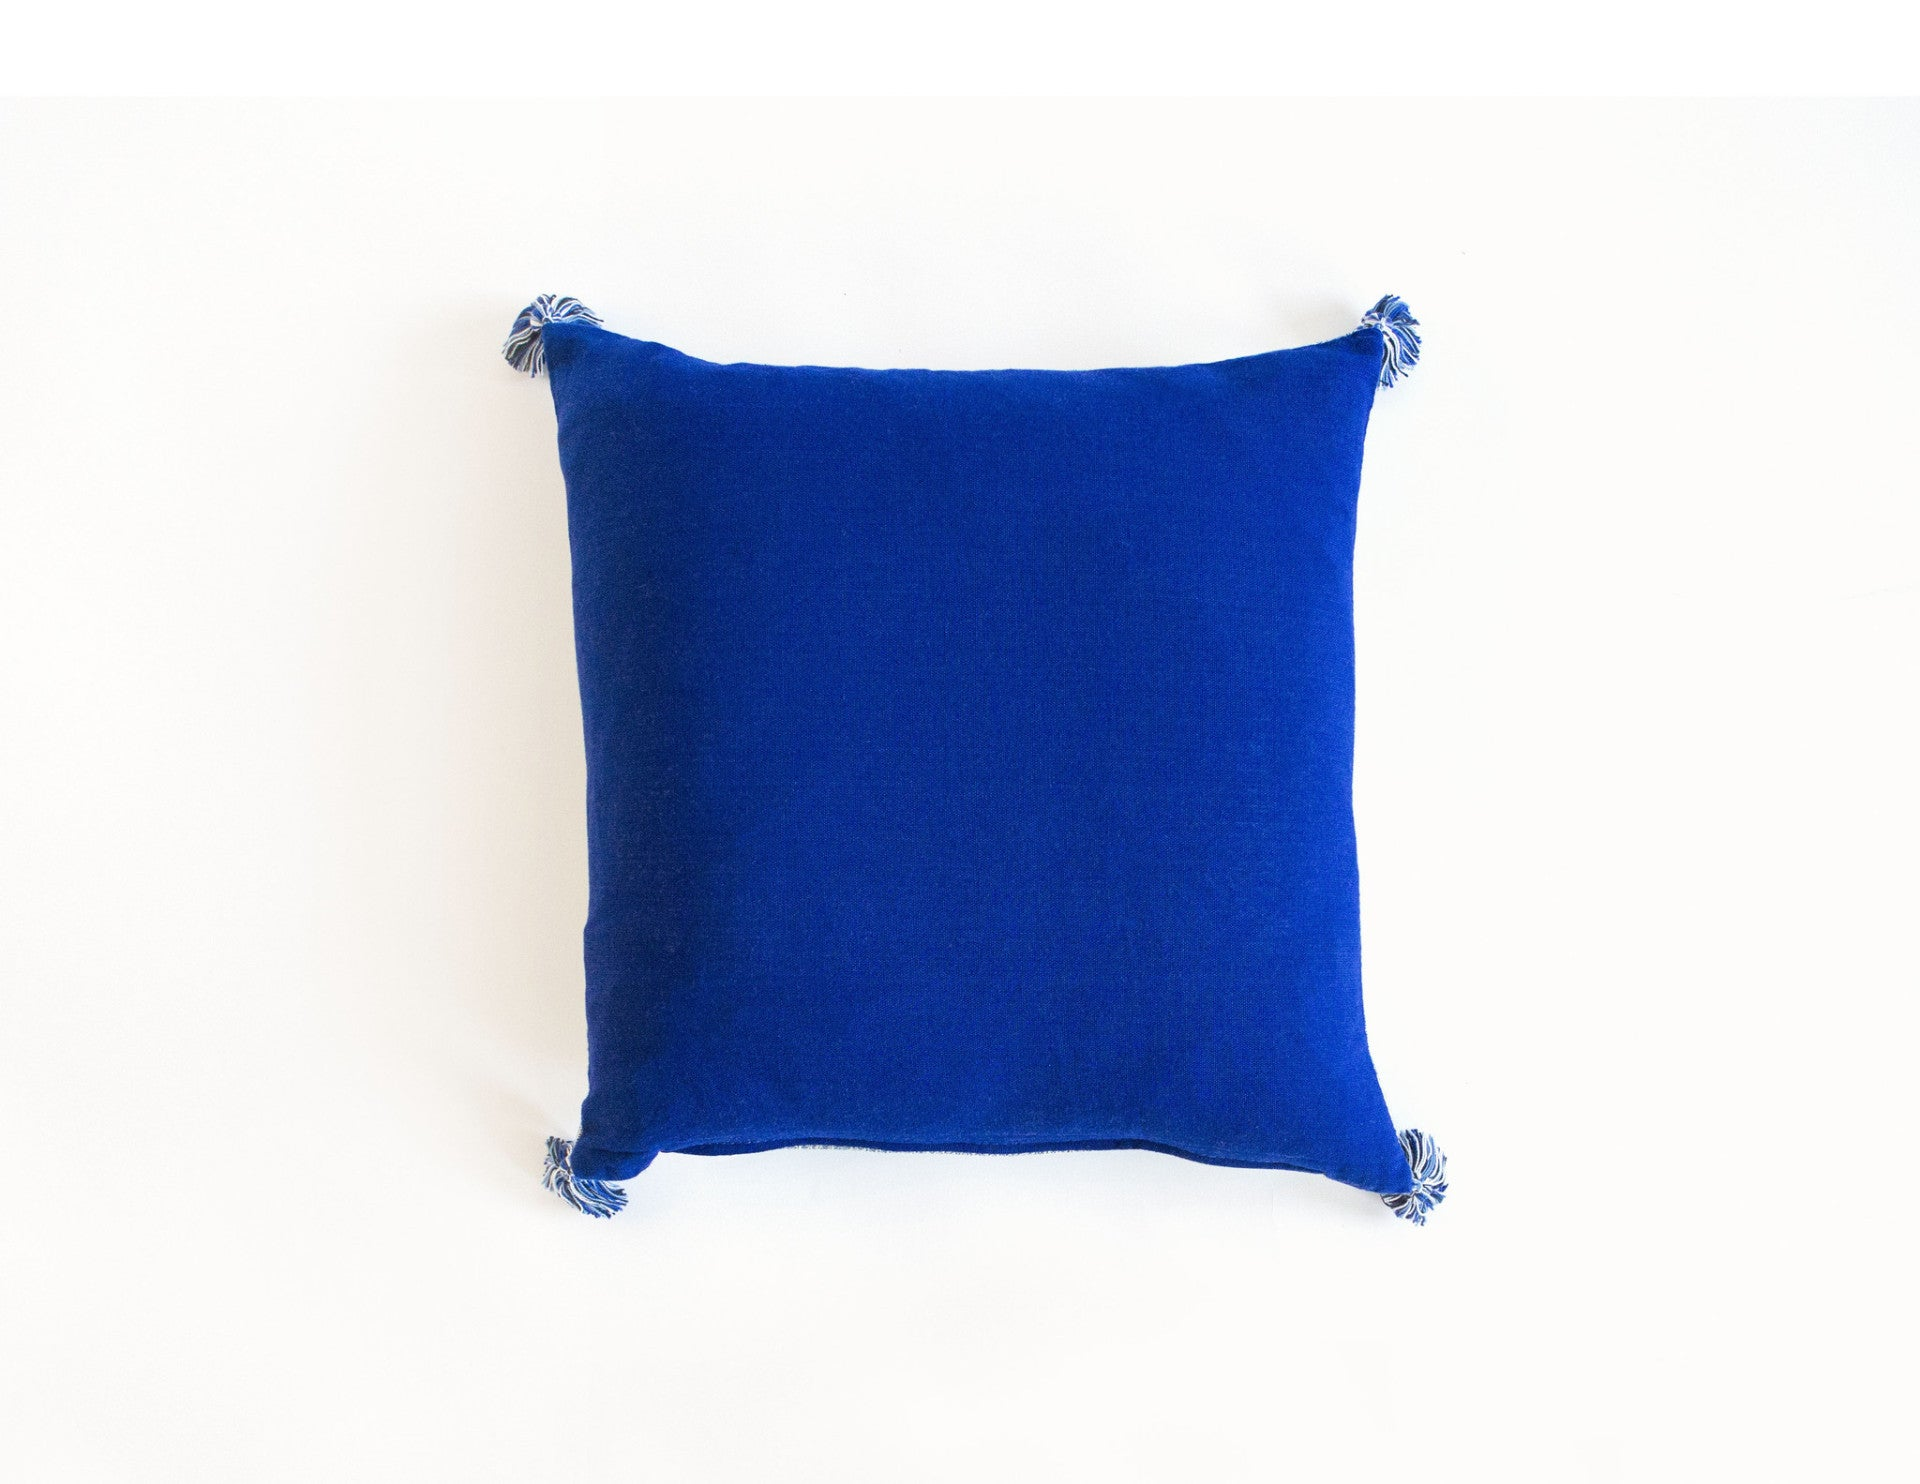 "Handmade Linen Pillow Covers (18""x18"") - Blue"